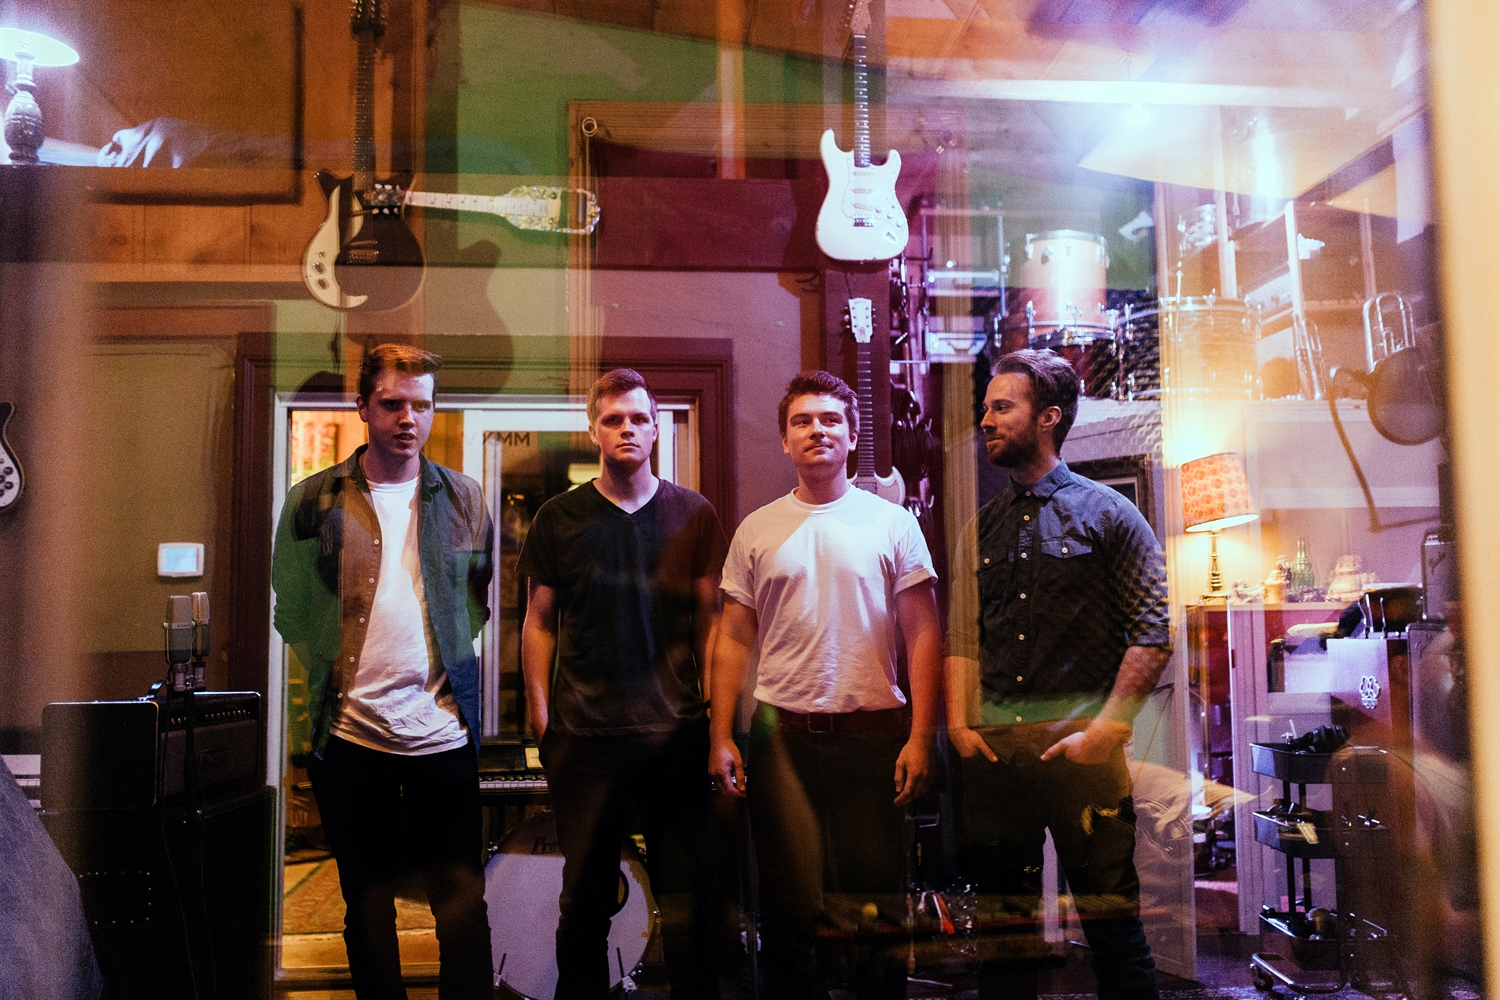 ca5d48b90 Lost In Japan Release First Full-Length Album - LondonFuse